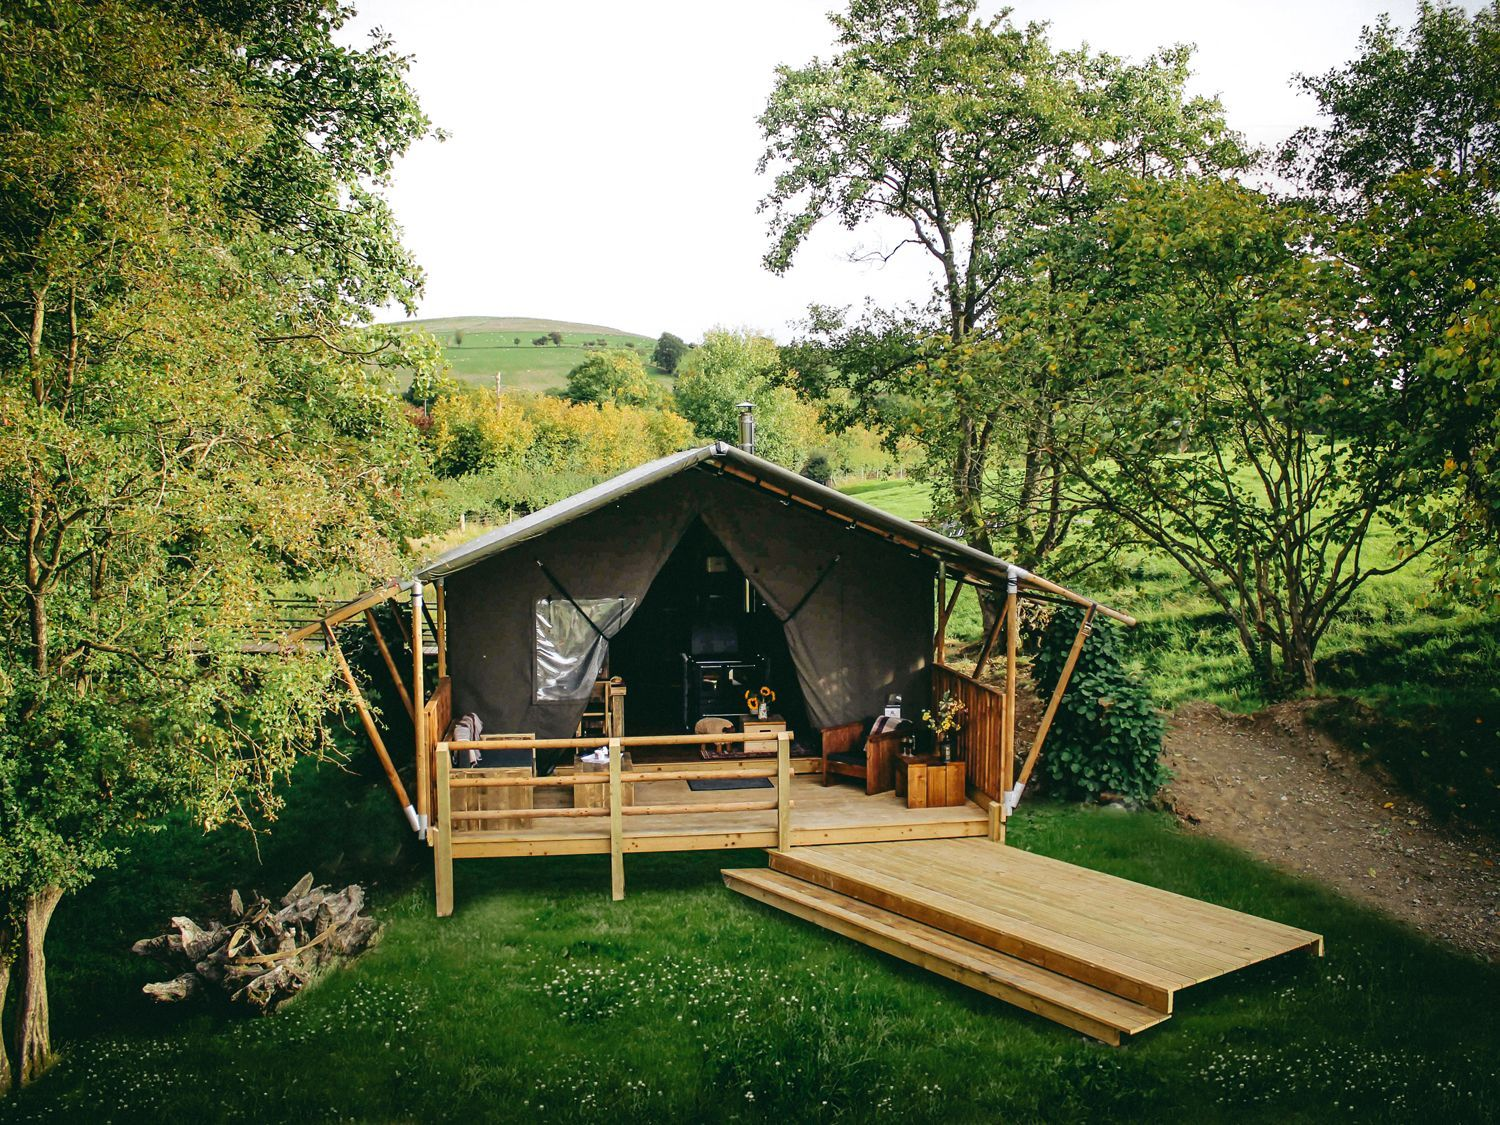 This safari tent in Wales has all the credentials for a wild escape